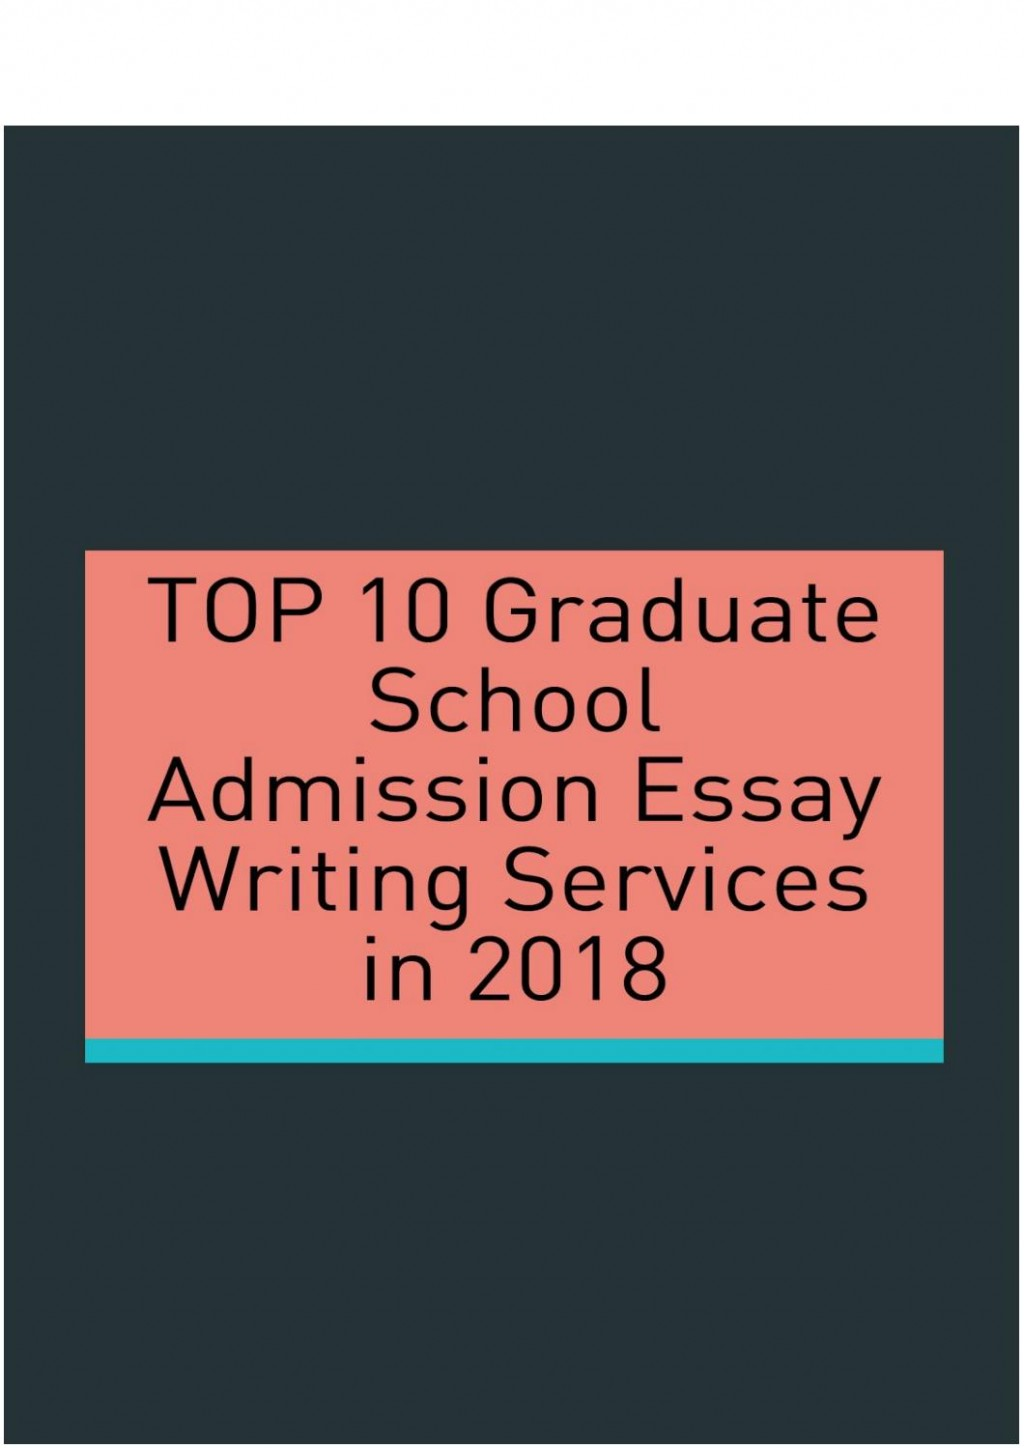 025 Custom Research Paper Writing Services Page 1 Dreaded Best Academic Service Thesis Large